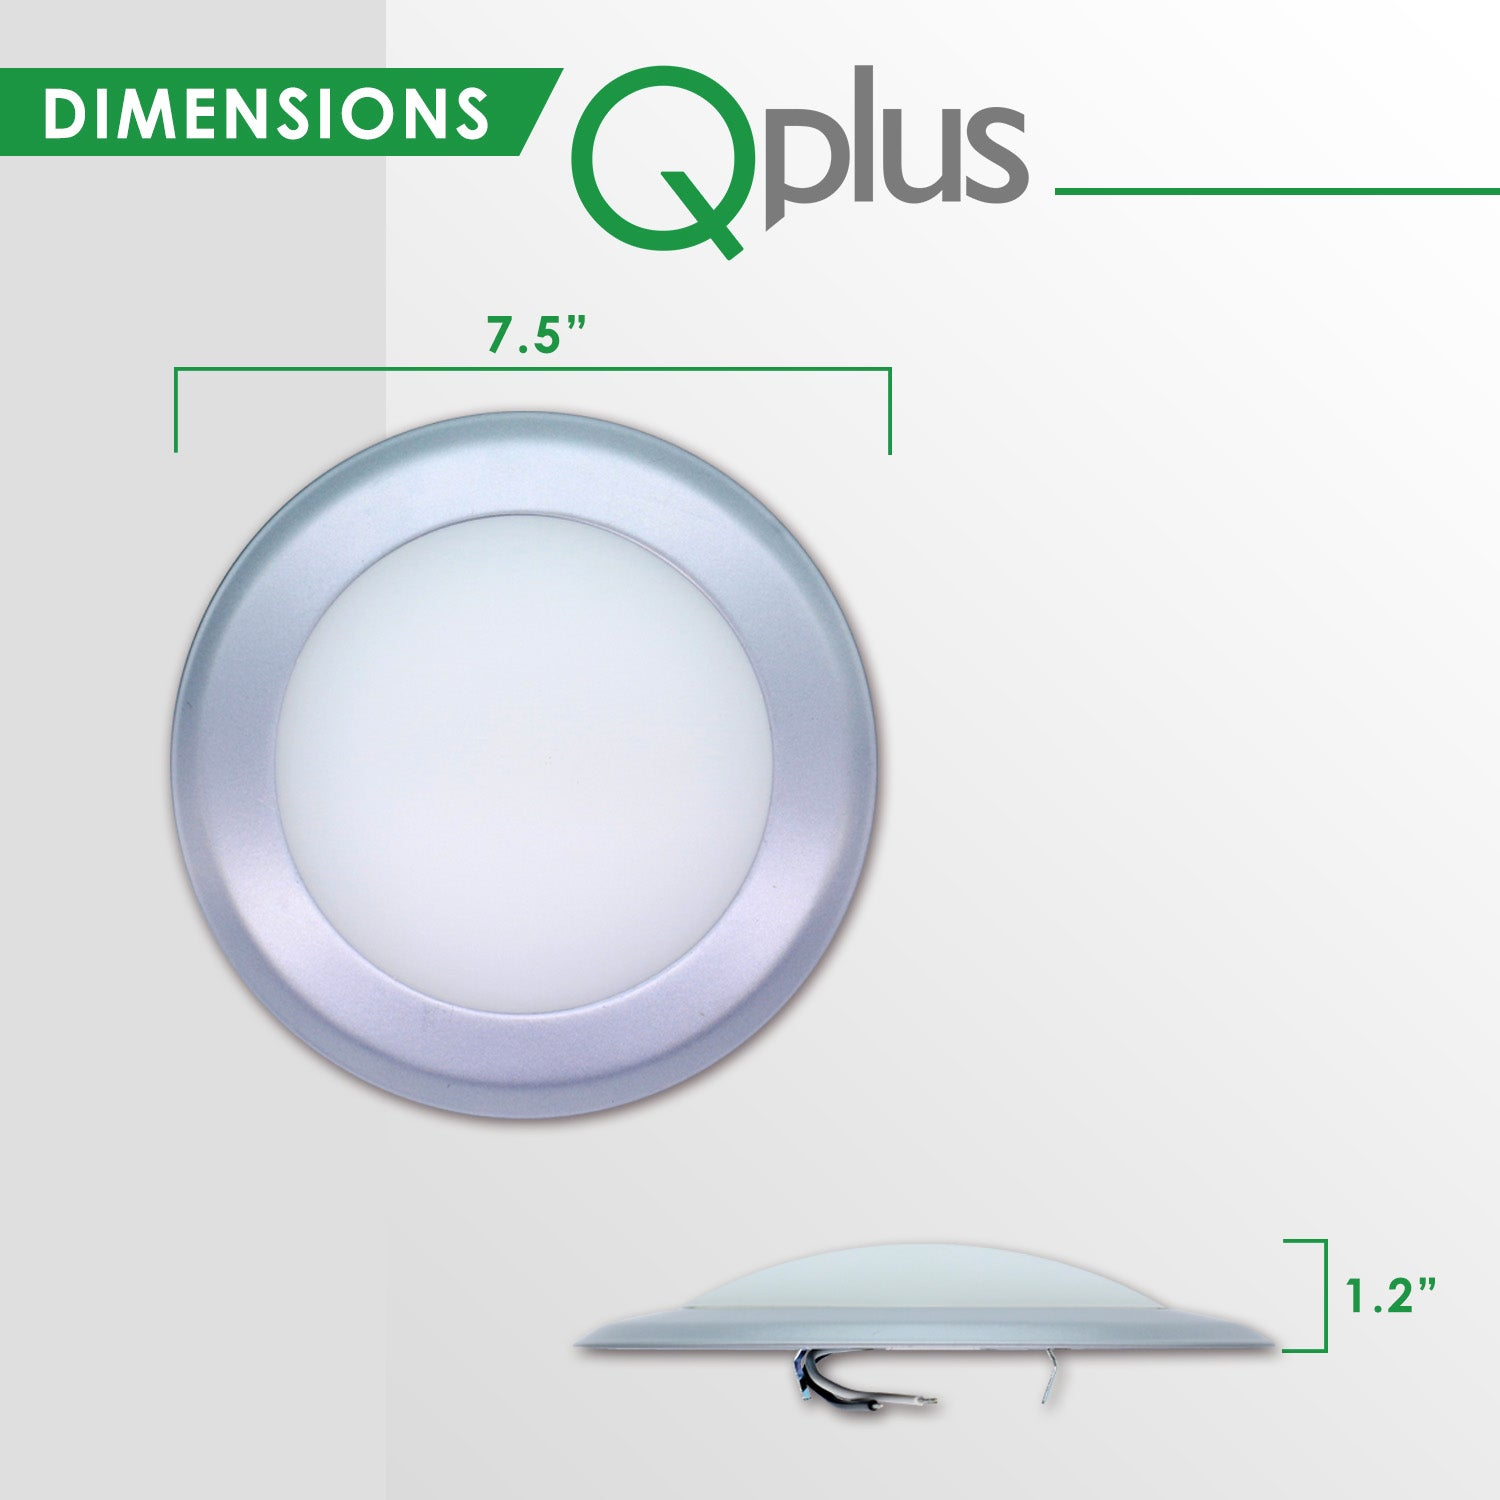 QPlus 7.5 Inch Round LED Dimmable Ceiling Disk Light 15W/1050 Lumens 3000K in Bronze, White & Silver Metal Trims